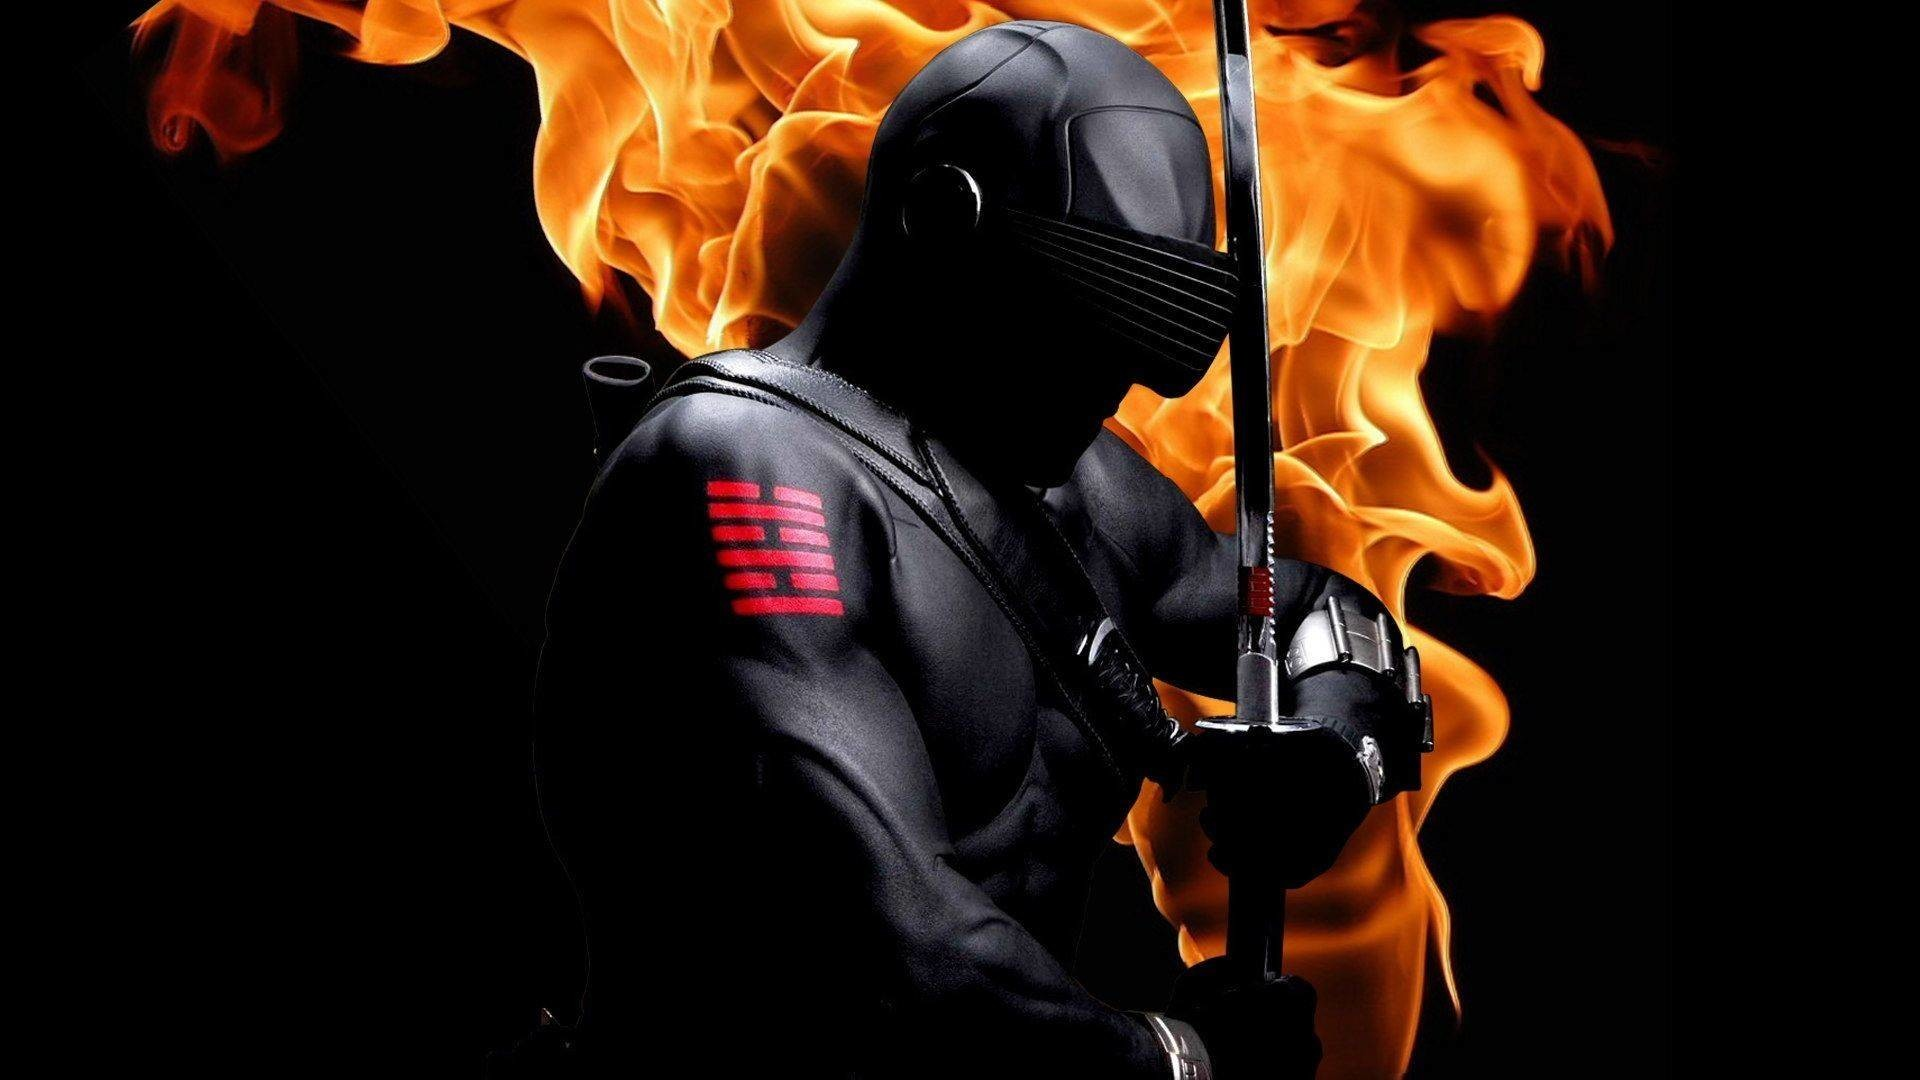 1920x1080 Snake Eyes (G.I. Joe) with sword on fire - Wallpapers Picture